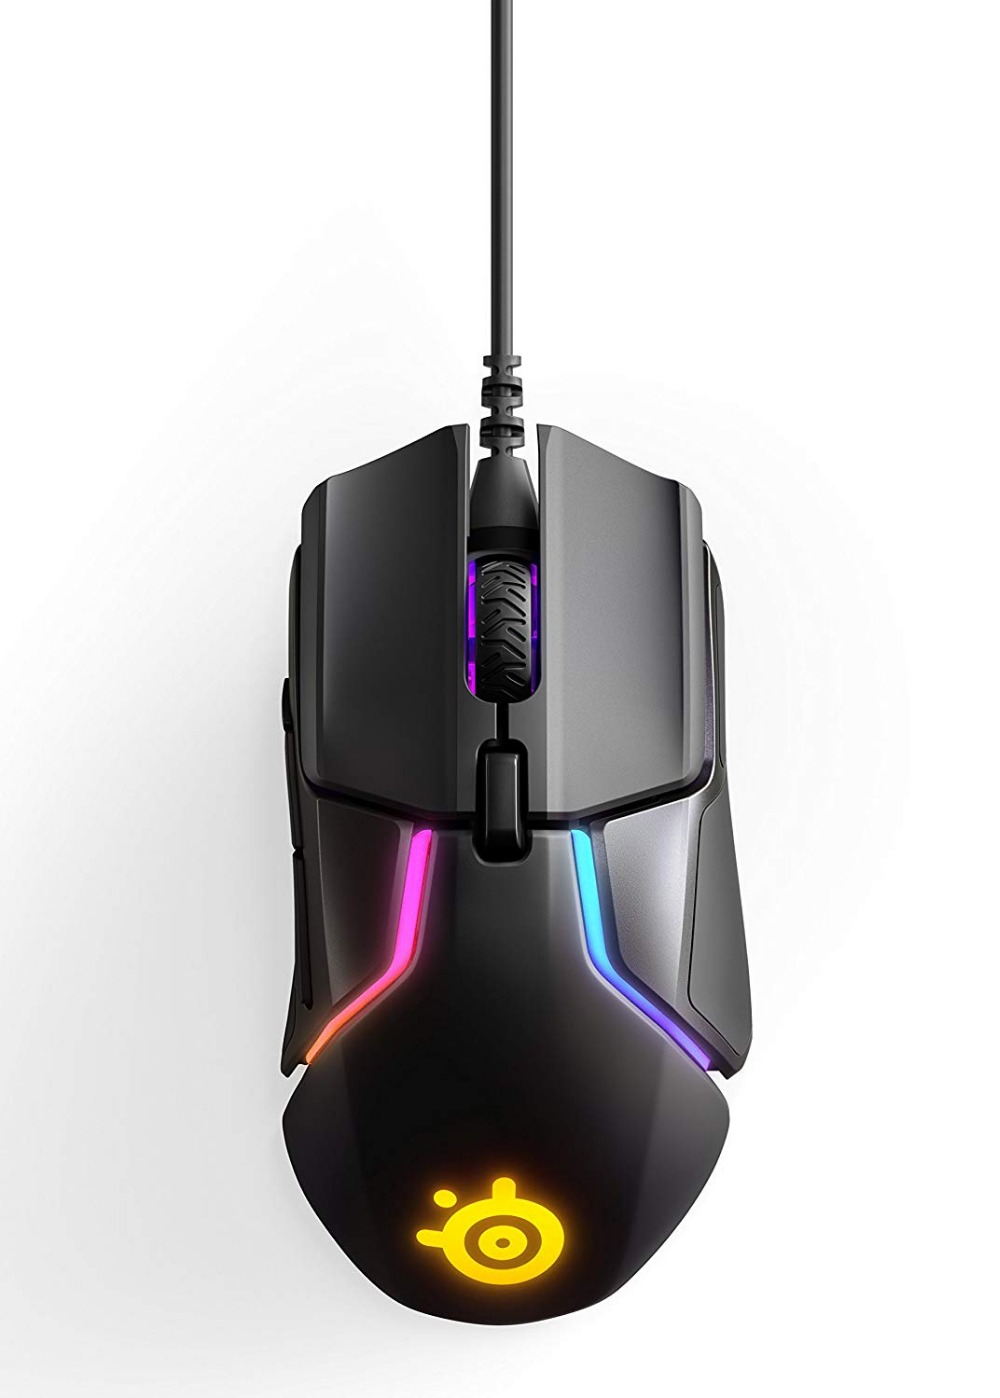 SteelSeries Rival 600 Gaming Mouse - 12,000 CPI TrueMove3+ Dual Optical Sensor - 0.5 Lift-off Distance мышь steelseries rival 100 proton yellow usb [62340]